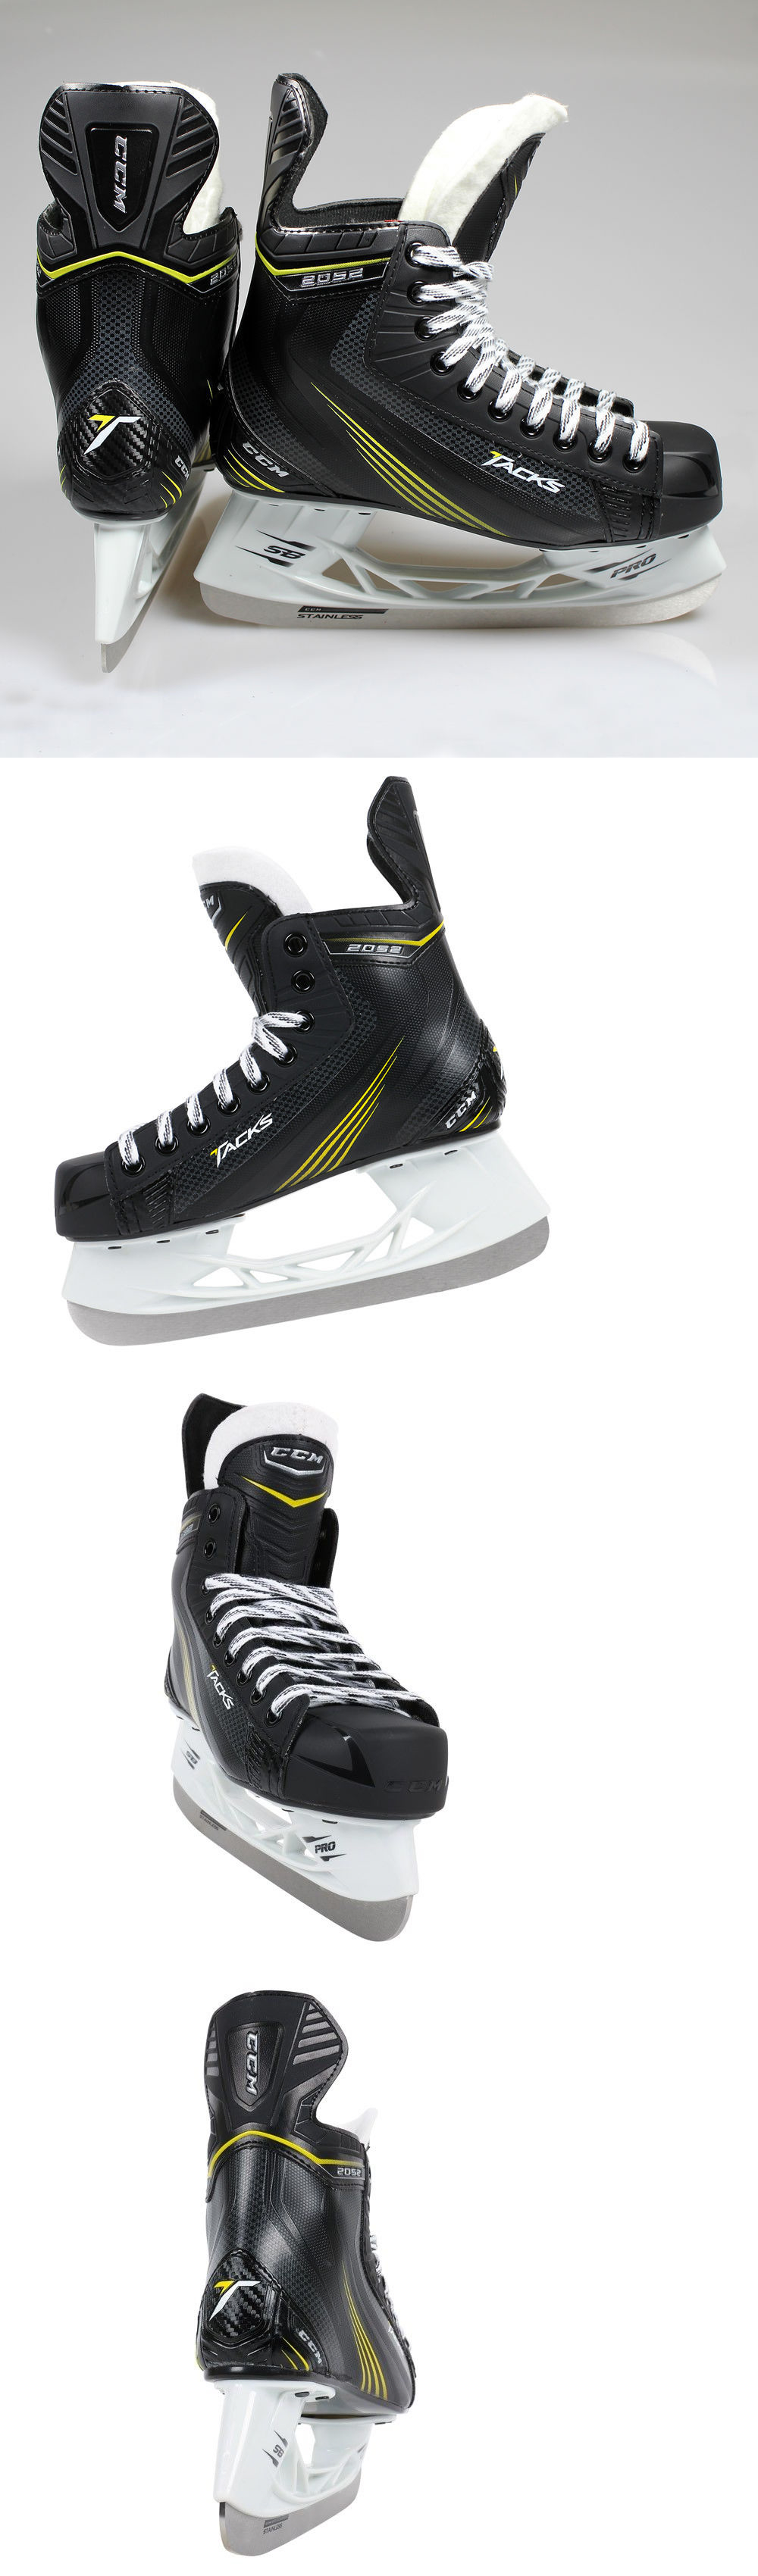 4926b02fee7 Youth 26344  New  90 Ccm Tacks 2052 Jr. Ice Hockey Skates For Kids Boys  Youth BUY IT NOW ONLY   49.94